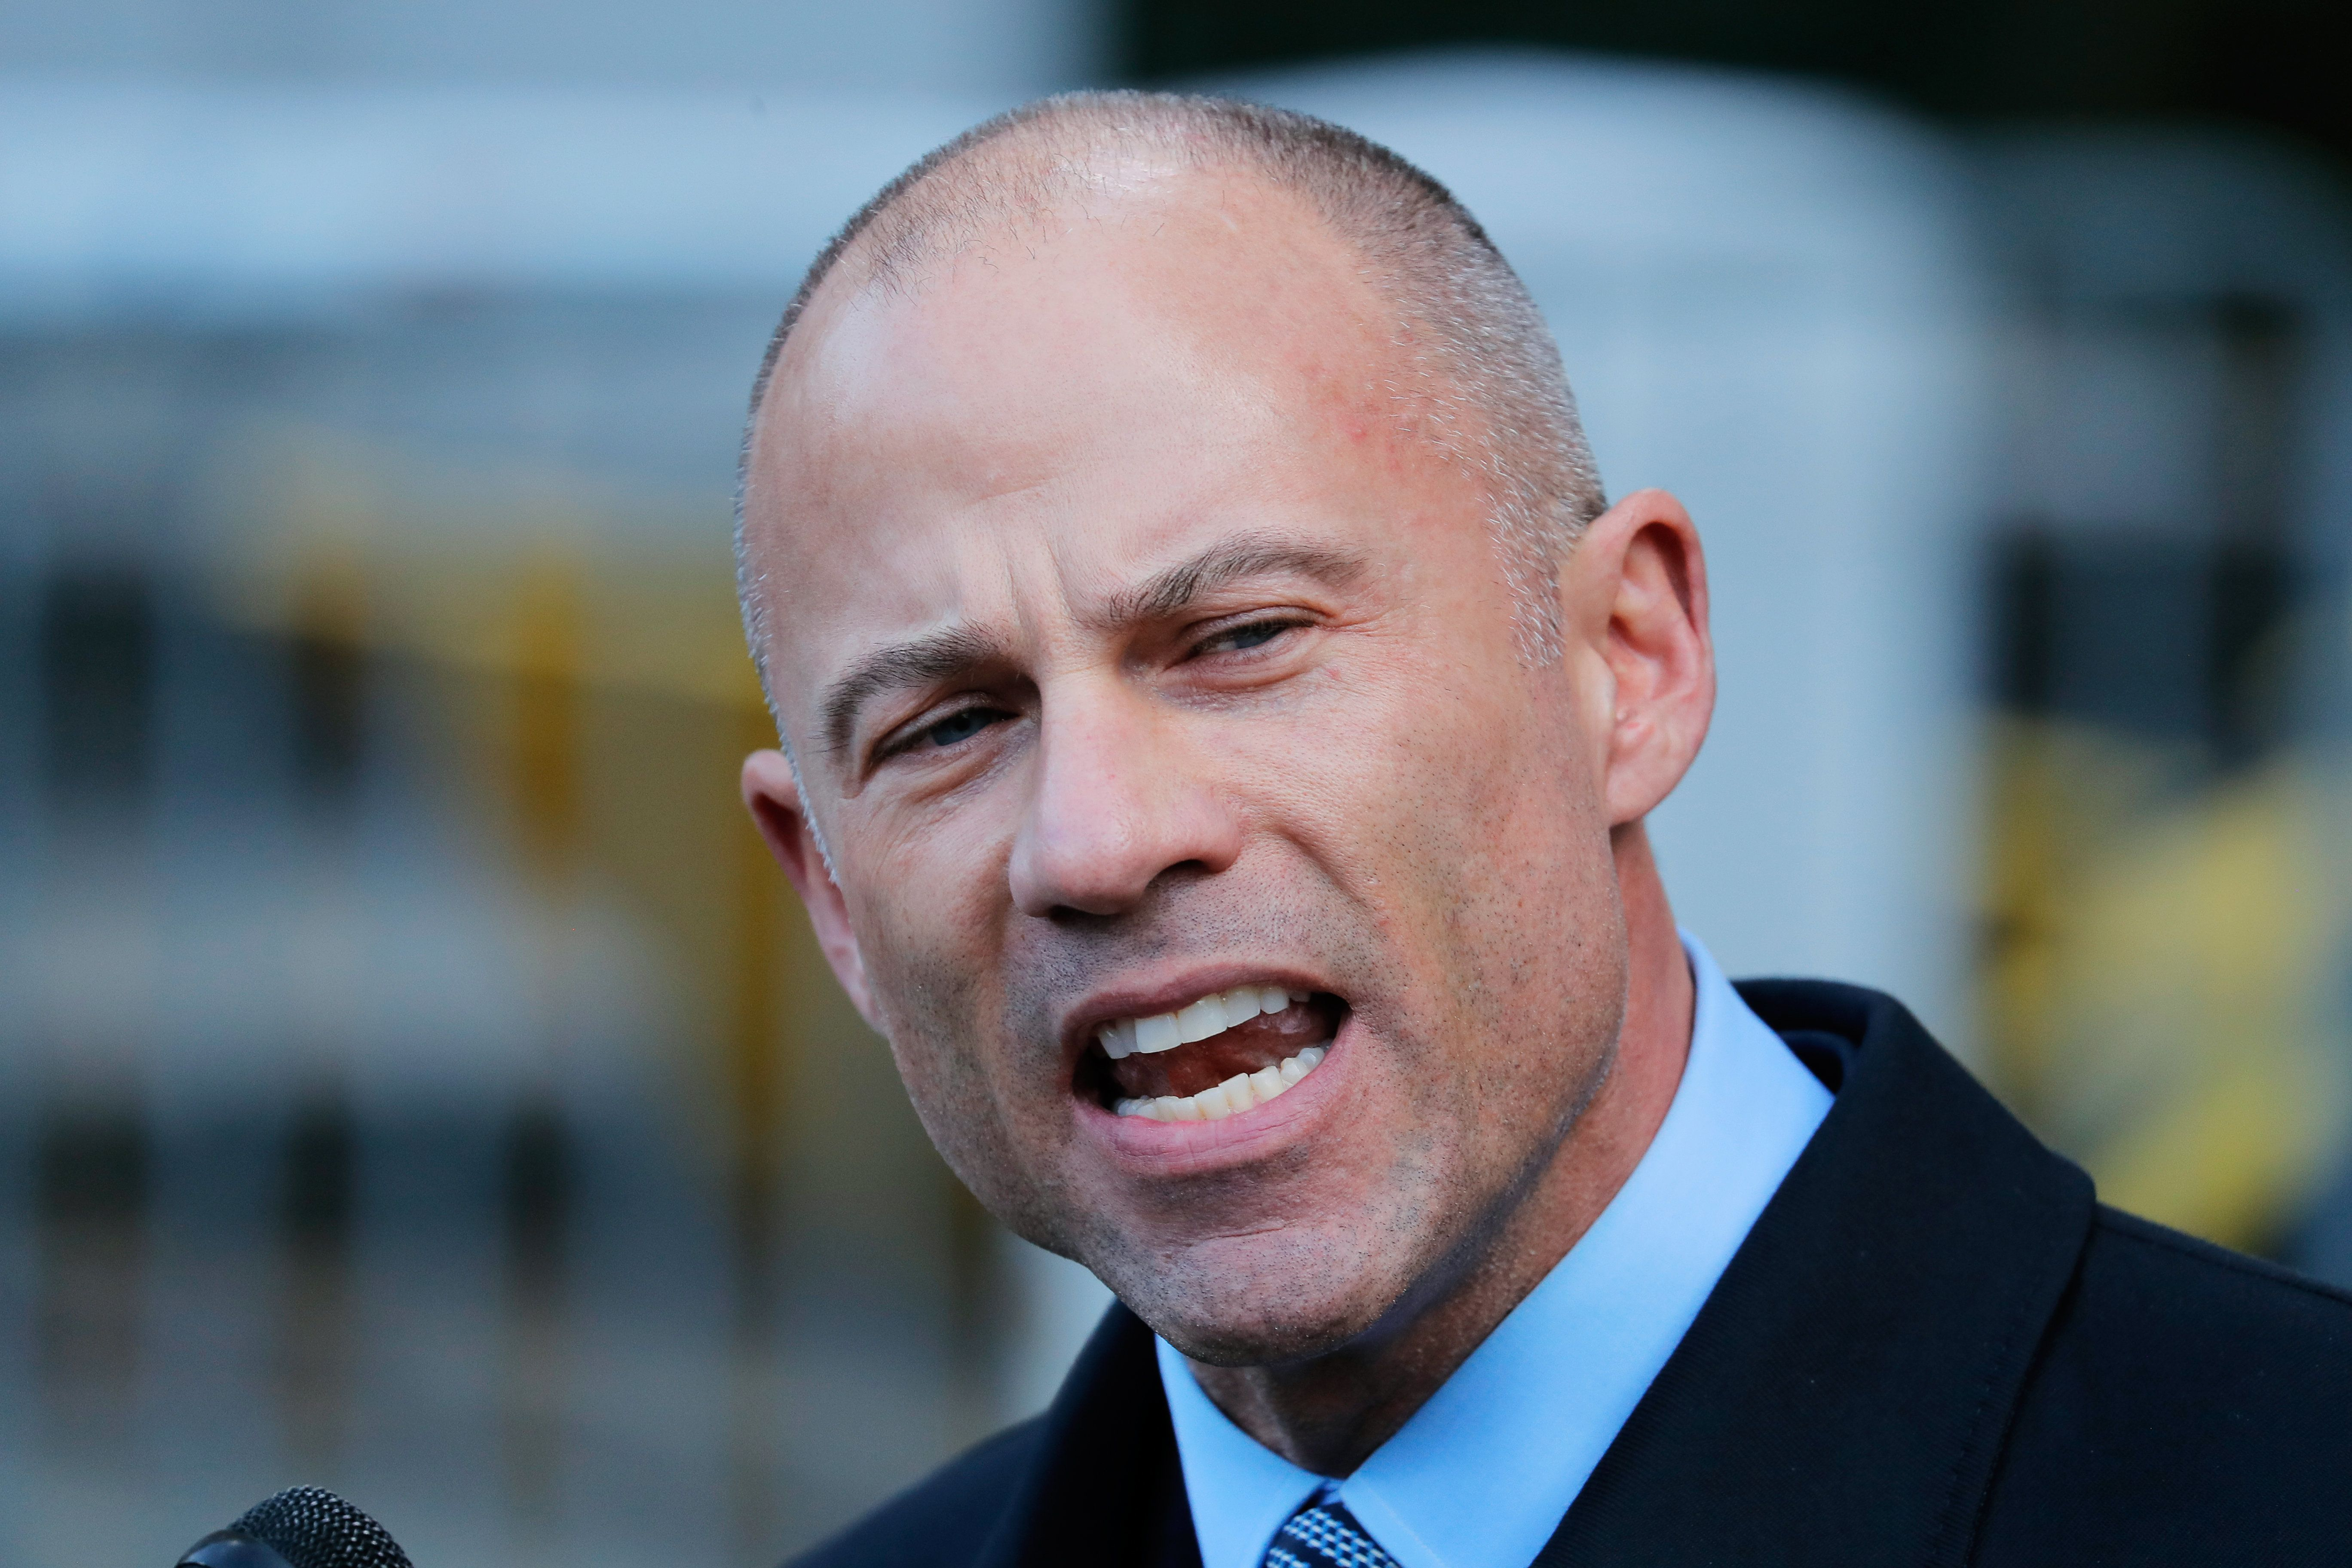 "<a href=""https://www.huffingtonpost.com/topic/michael-avenatti"">Michael Avenatti</a>, attorney for porn star <a href=""https:/"